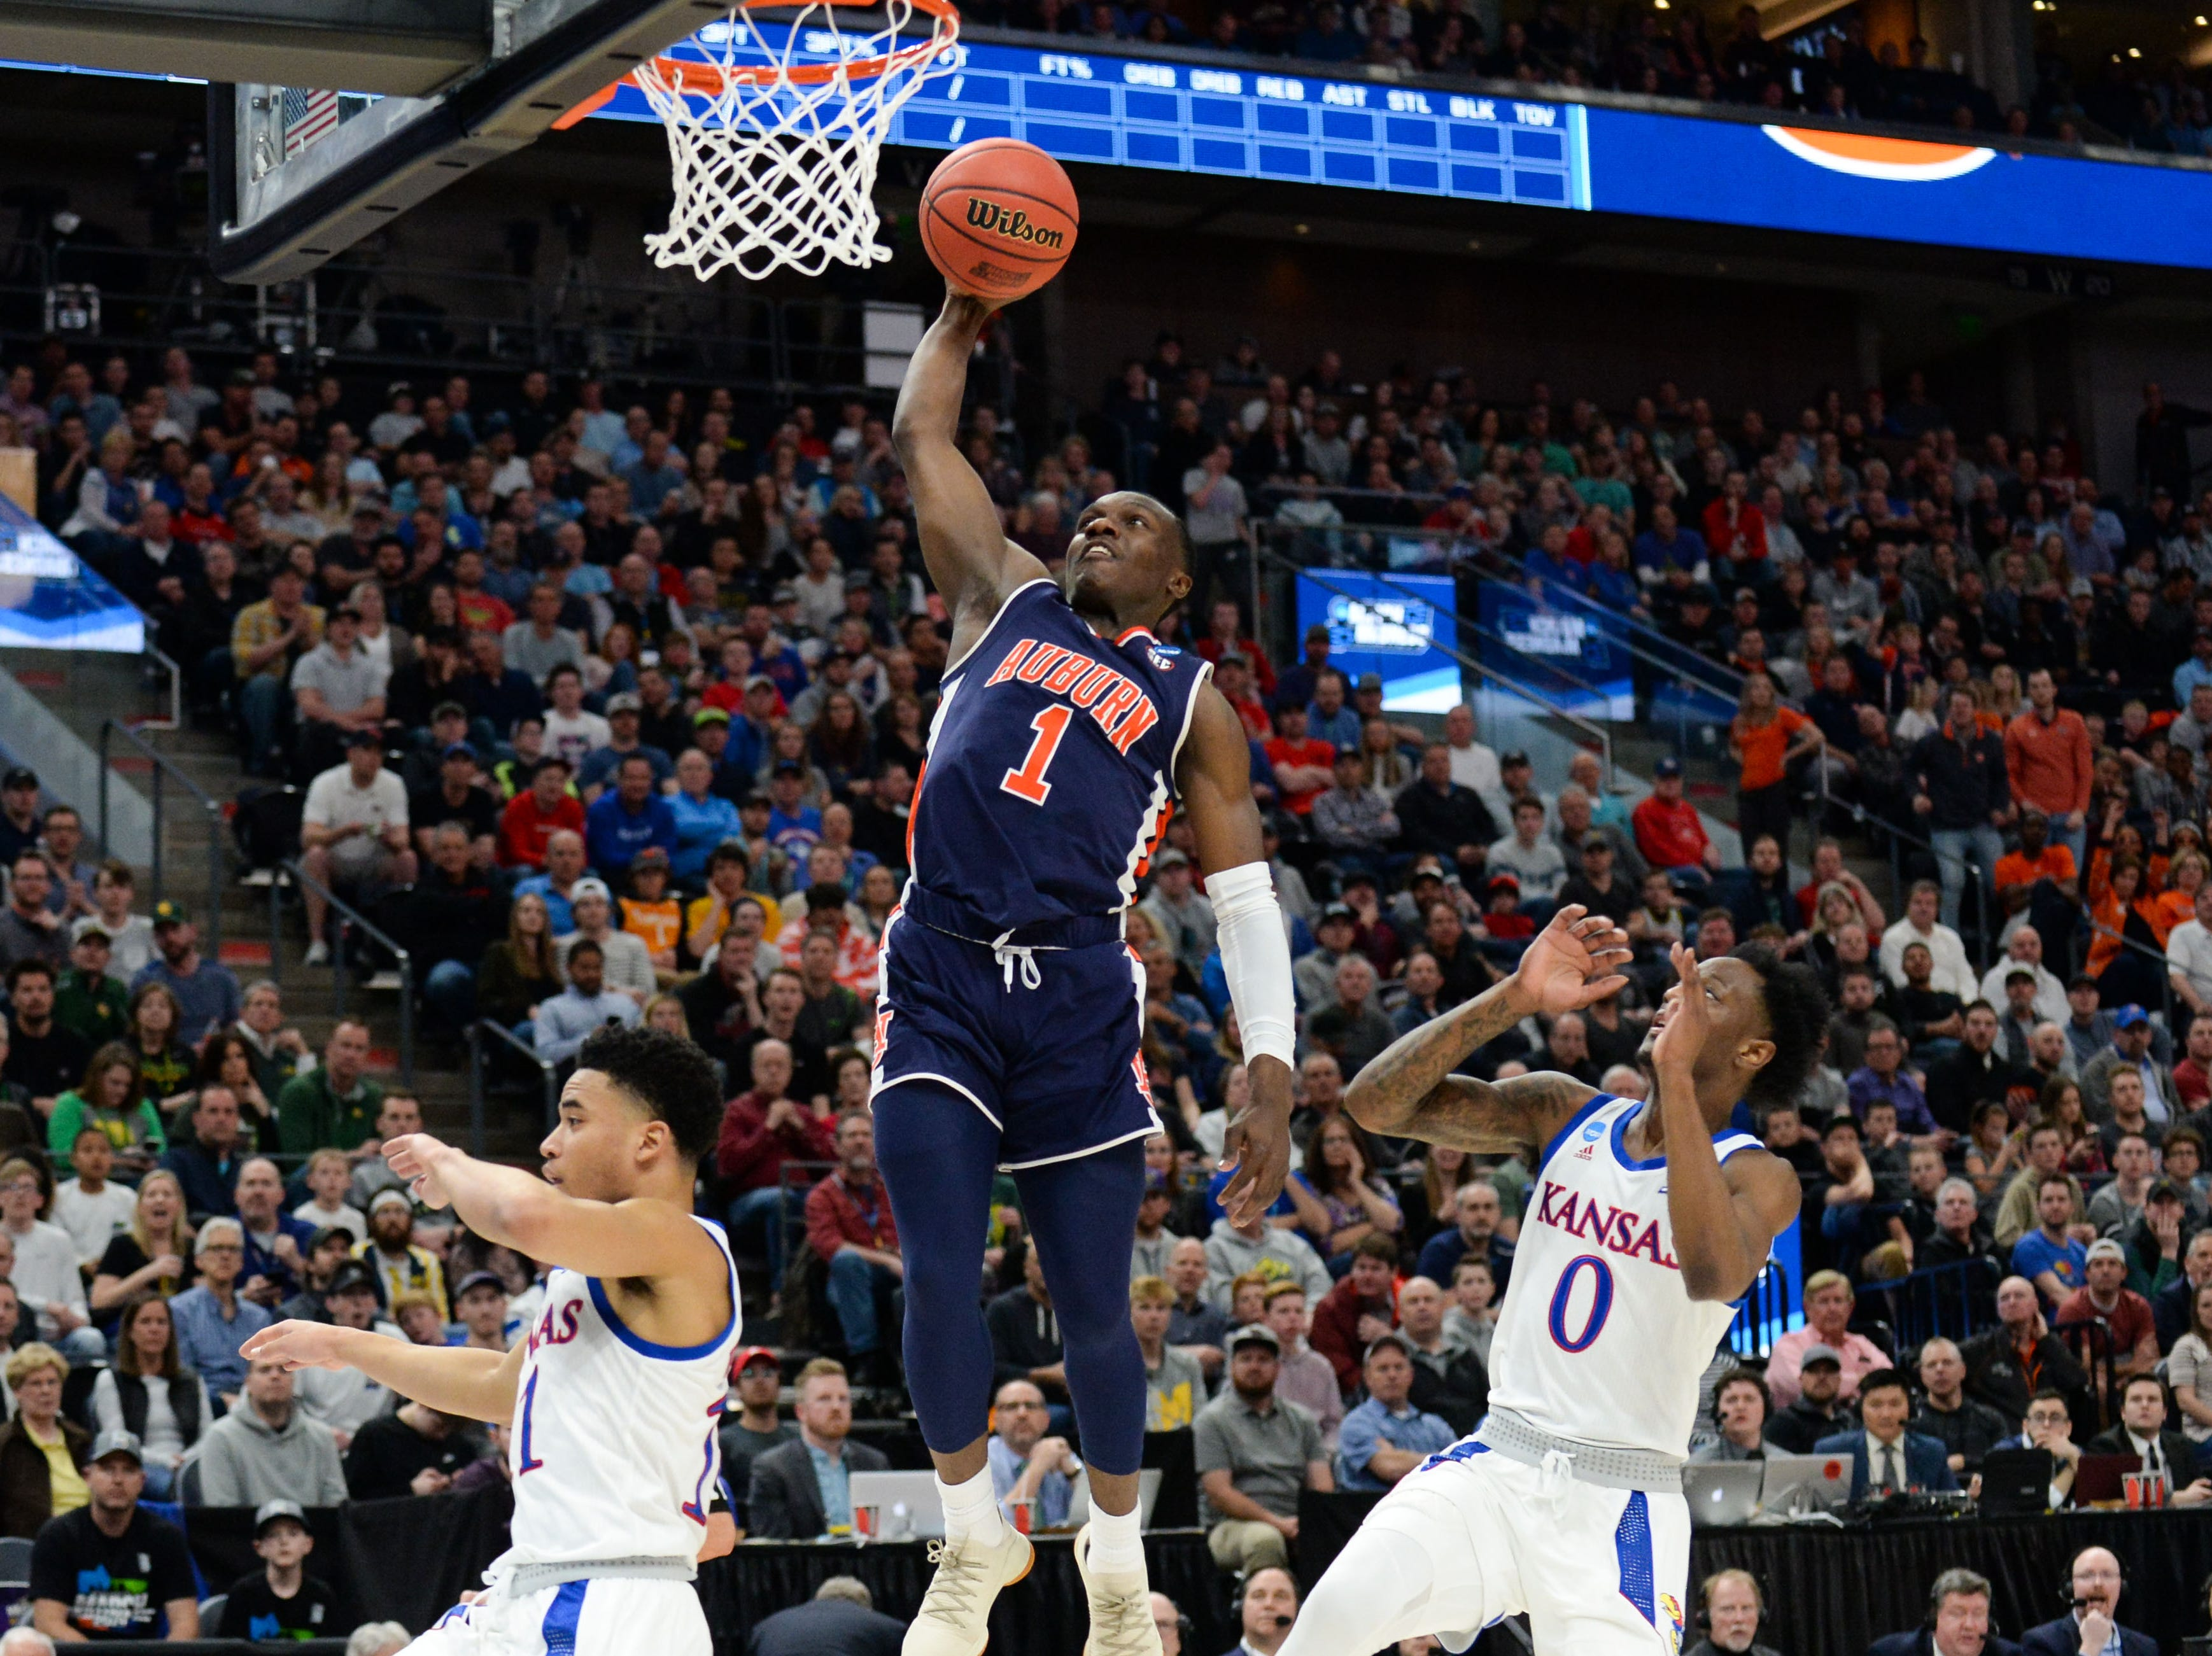 Mar 23, 2019; Salt Lake City, UT, USA; Auburn Tigers guard Jared Harper (1) goes up for a basket ahead of Kansas Jayhawks guard Marcus Garrett (0) during the first half in the second round of the 2019 NCAA Tournament at Vivint Smart Home Arena. Mandatory Credit: Gary A. Vasquez-USA TODAY Sports